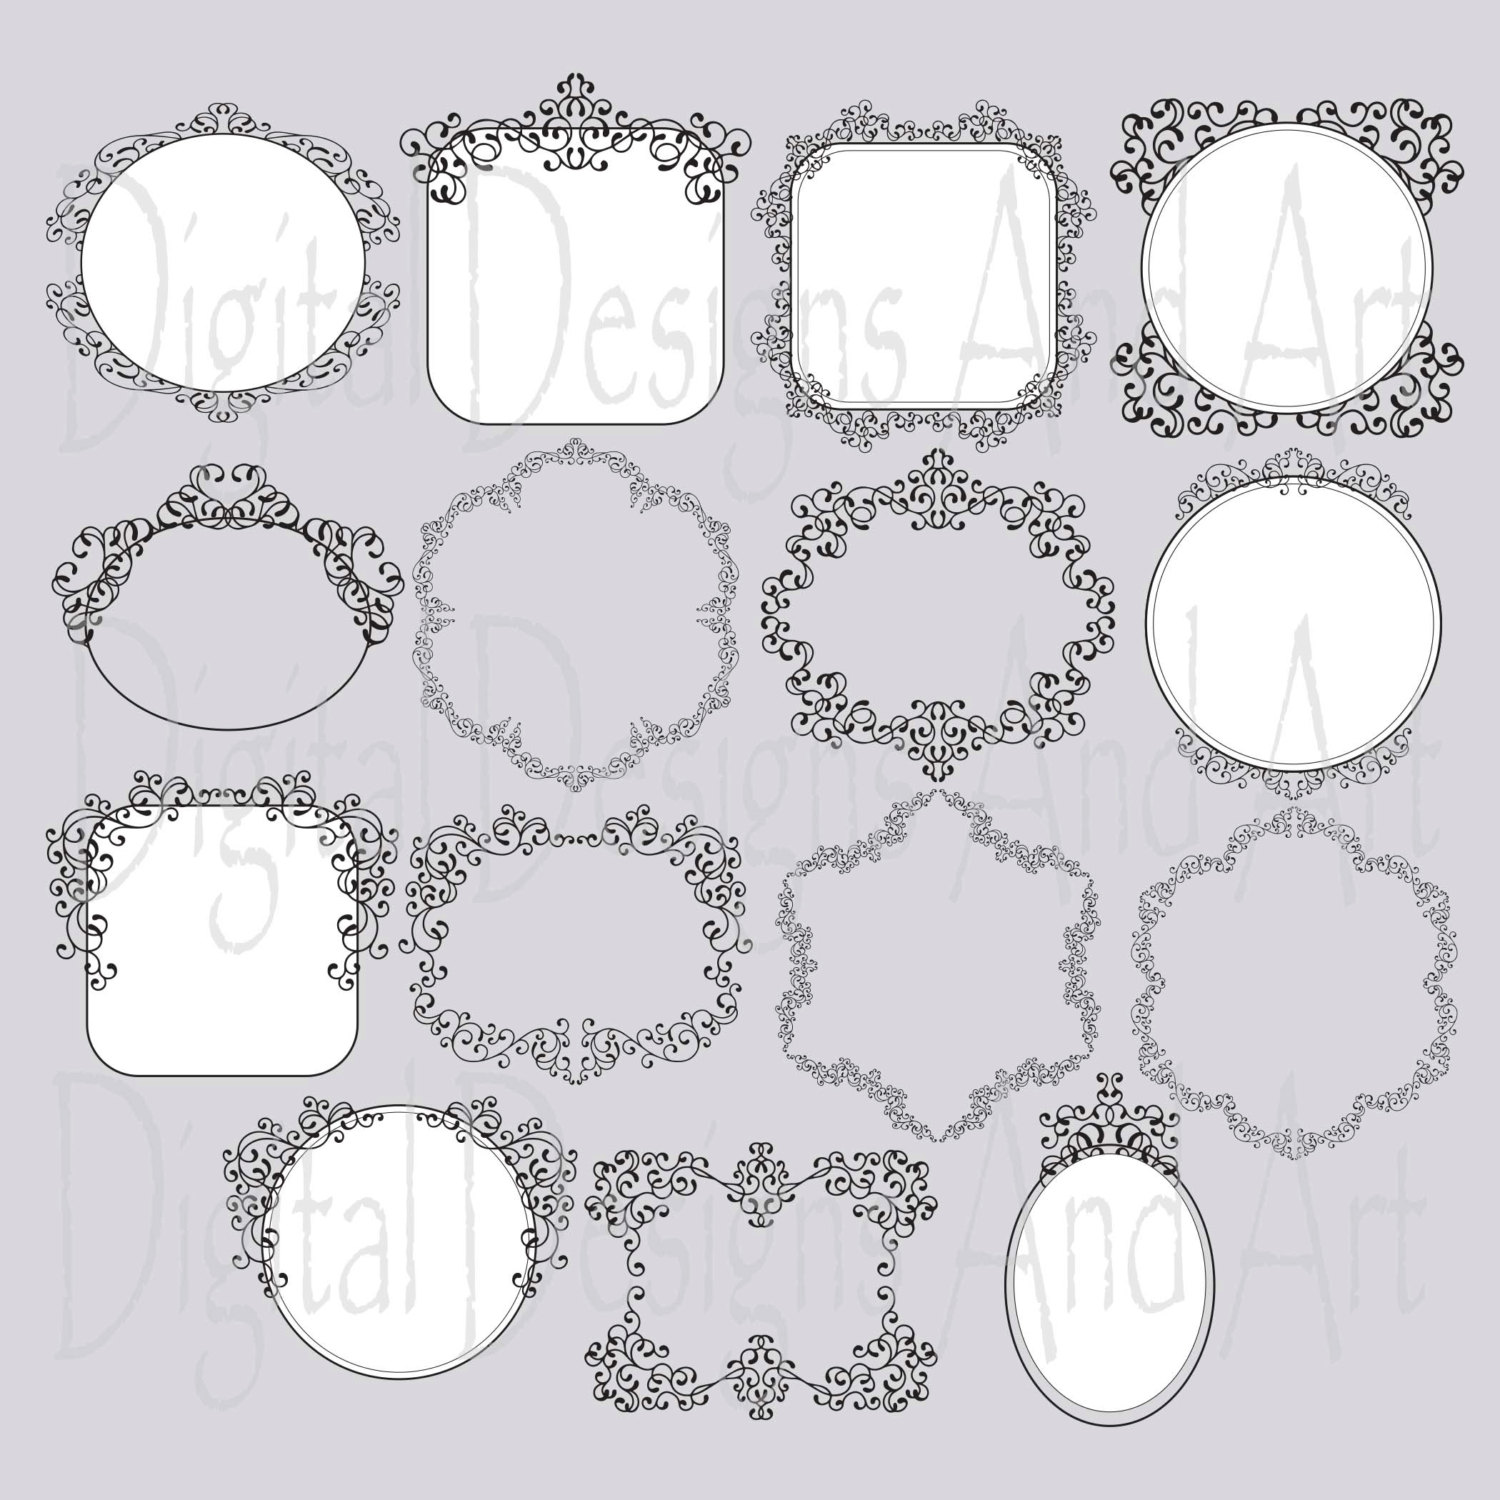 Photoshop clipart victorian pattern File frame digital frame This